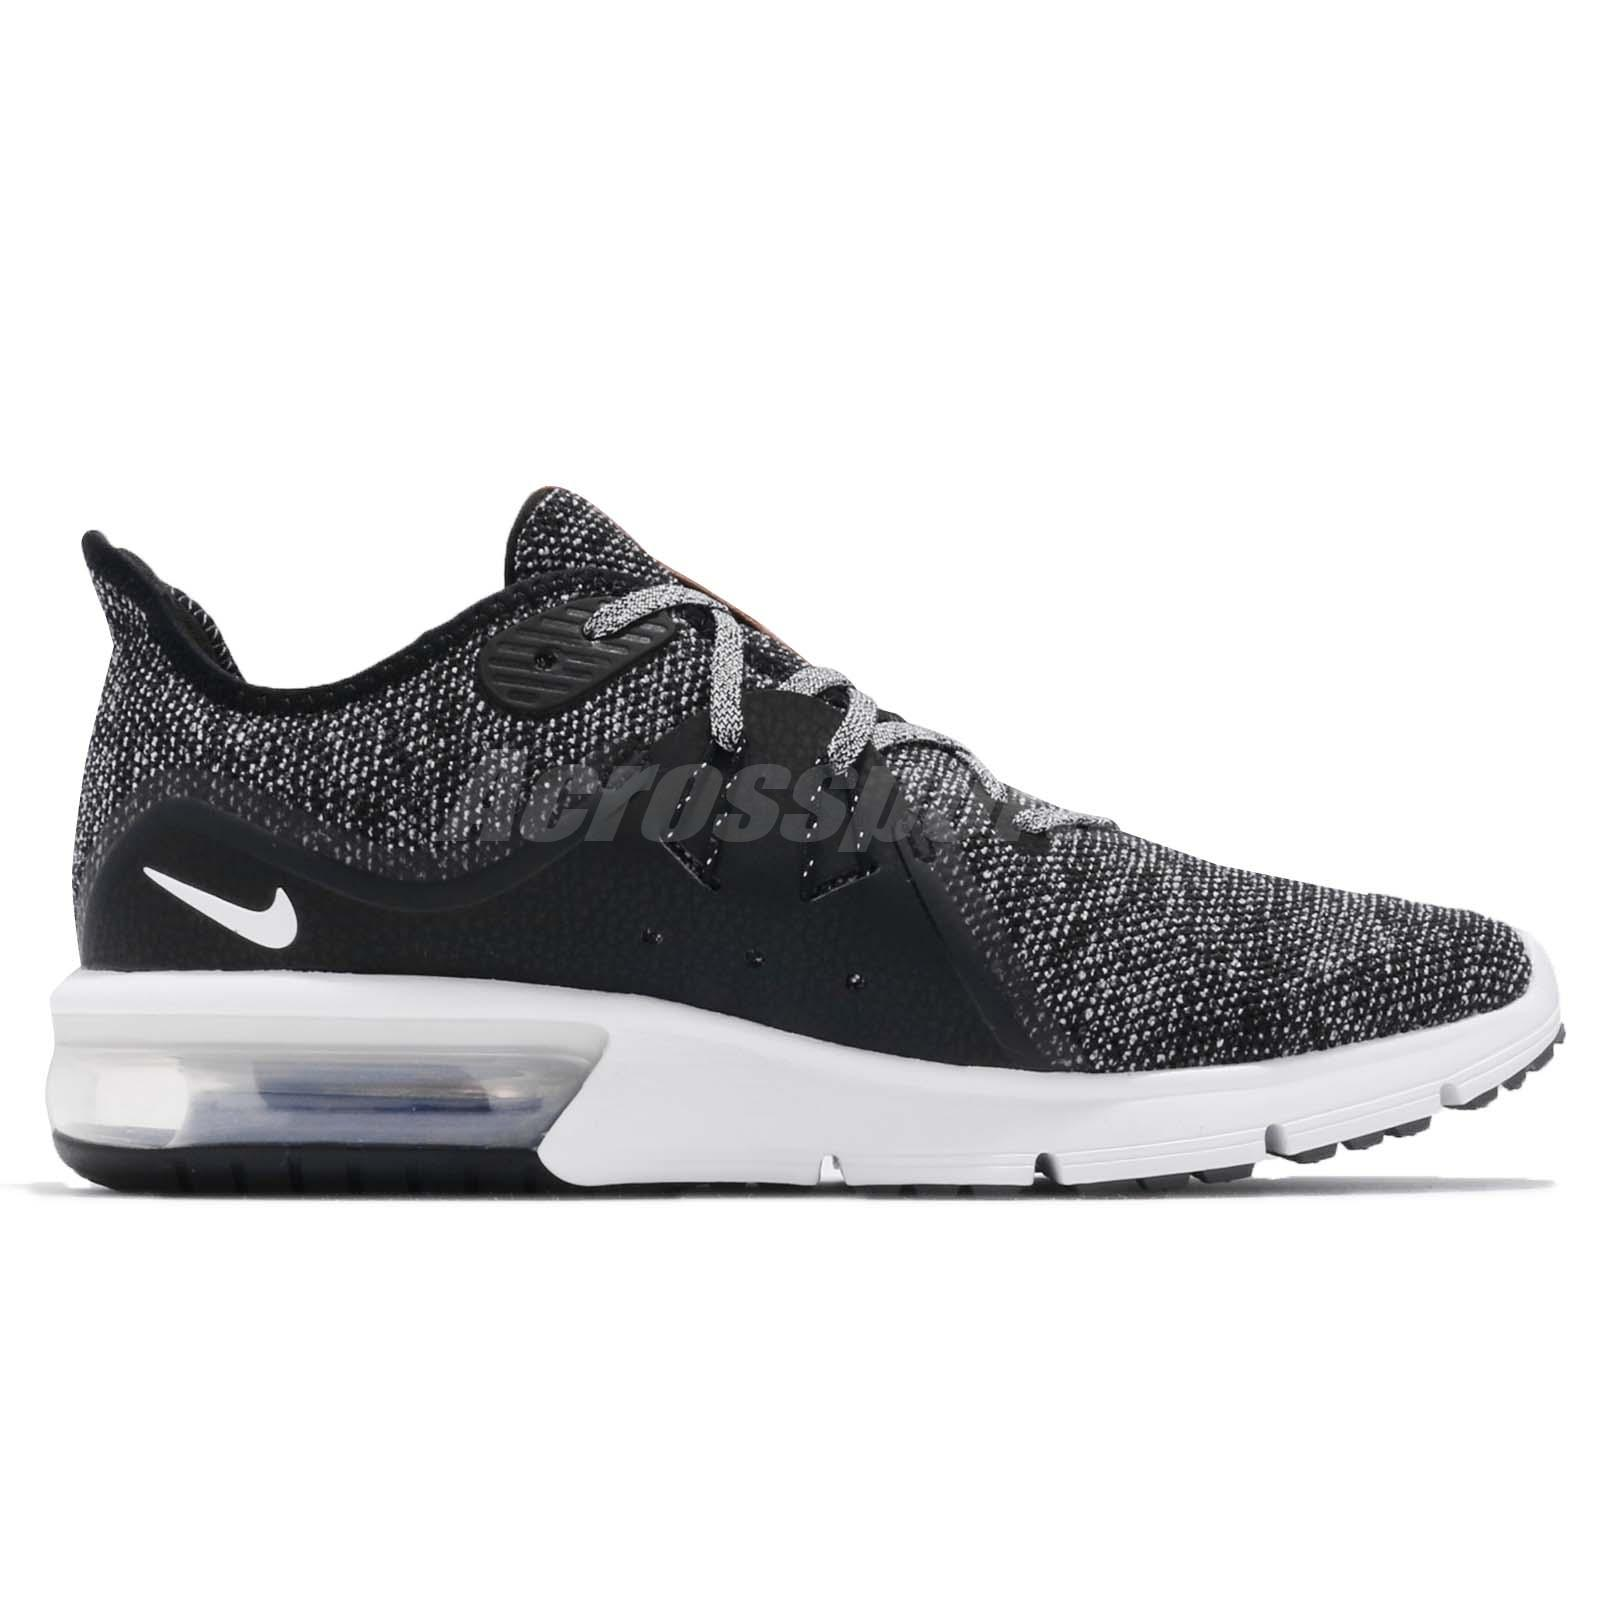 9cc5bd216 Nike Air Max Sequent 3 III Black White Grey Men Running Shoes ...